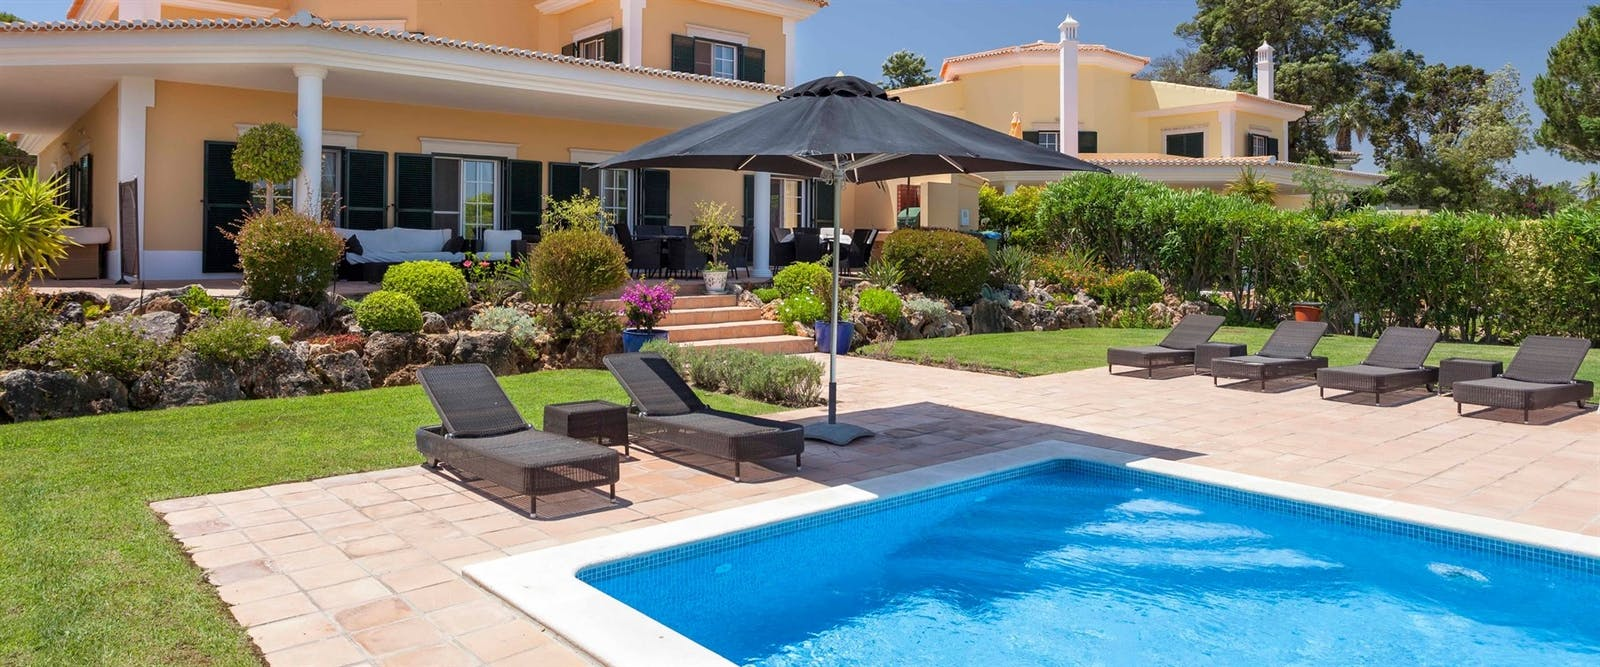 Luxury Villa Pool at Martinhal Quinta Family Resort, Algarve